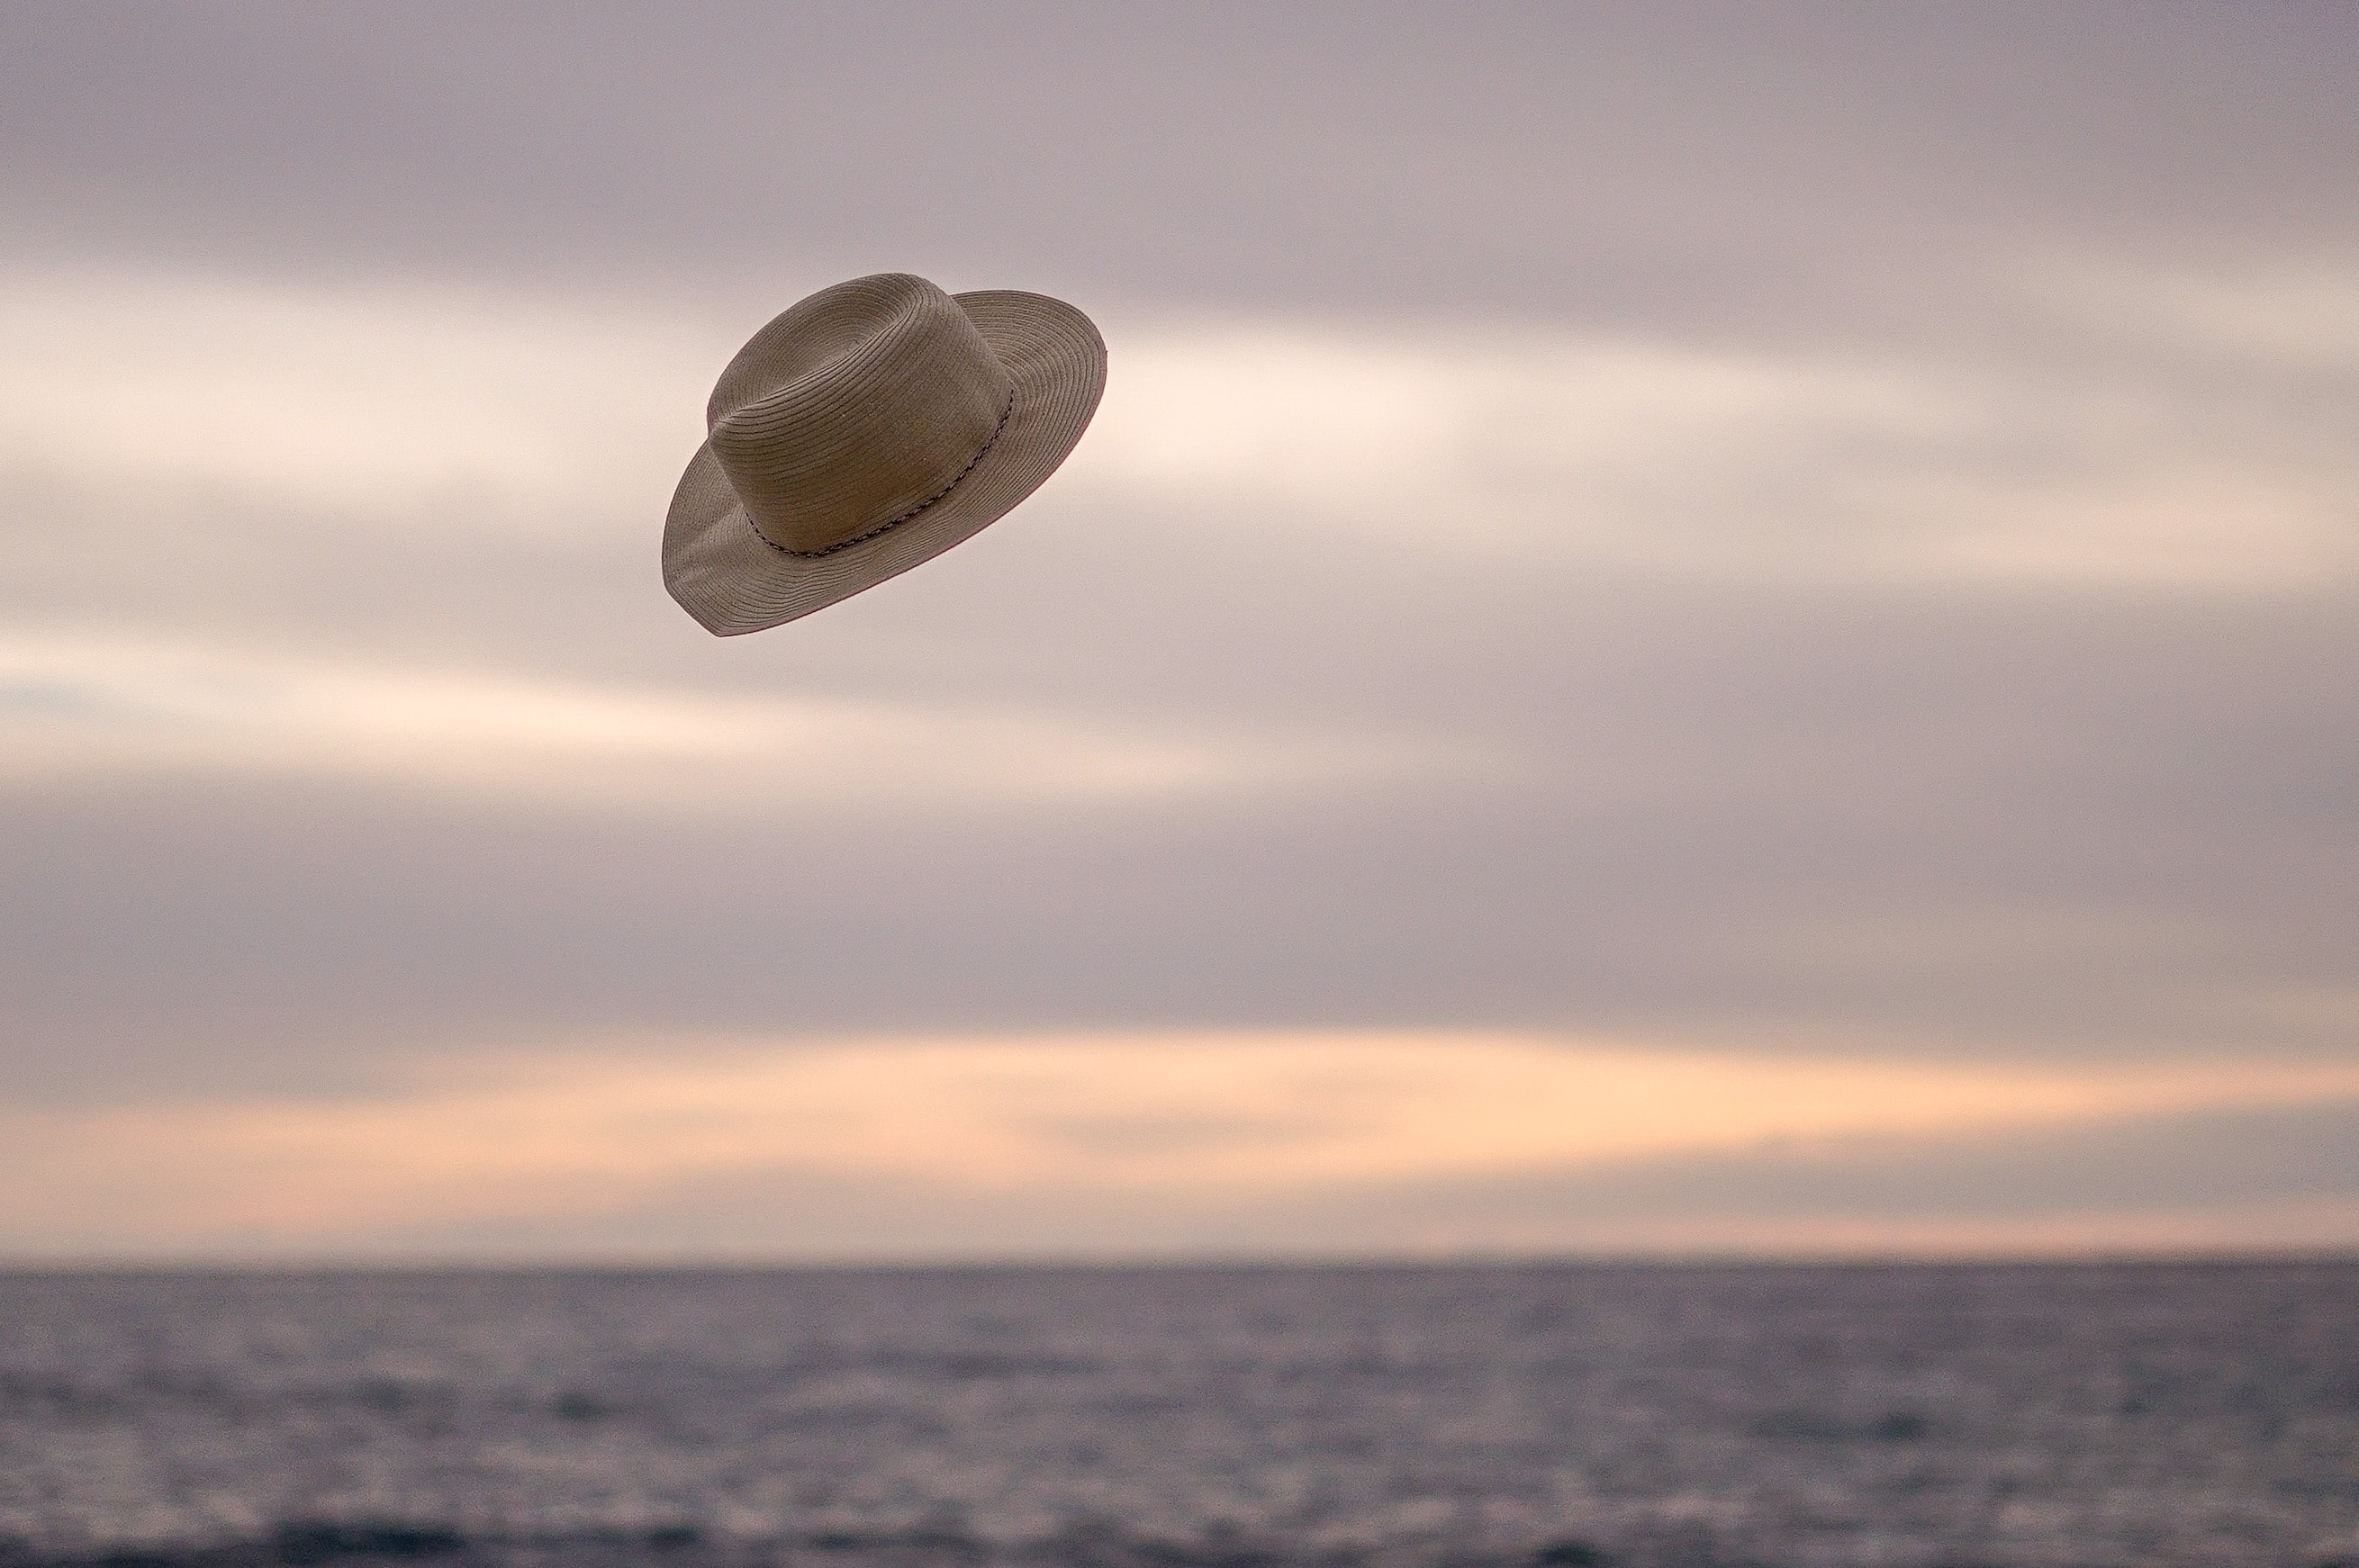 hat flying above the ocean during day time